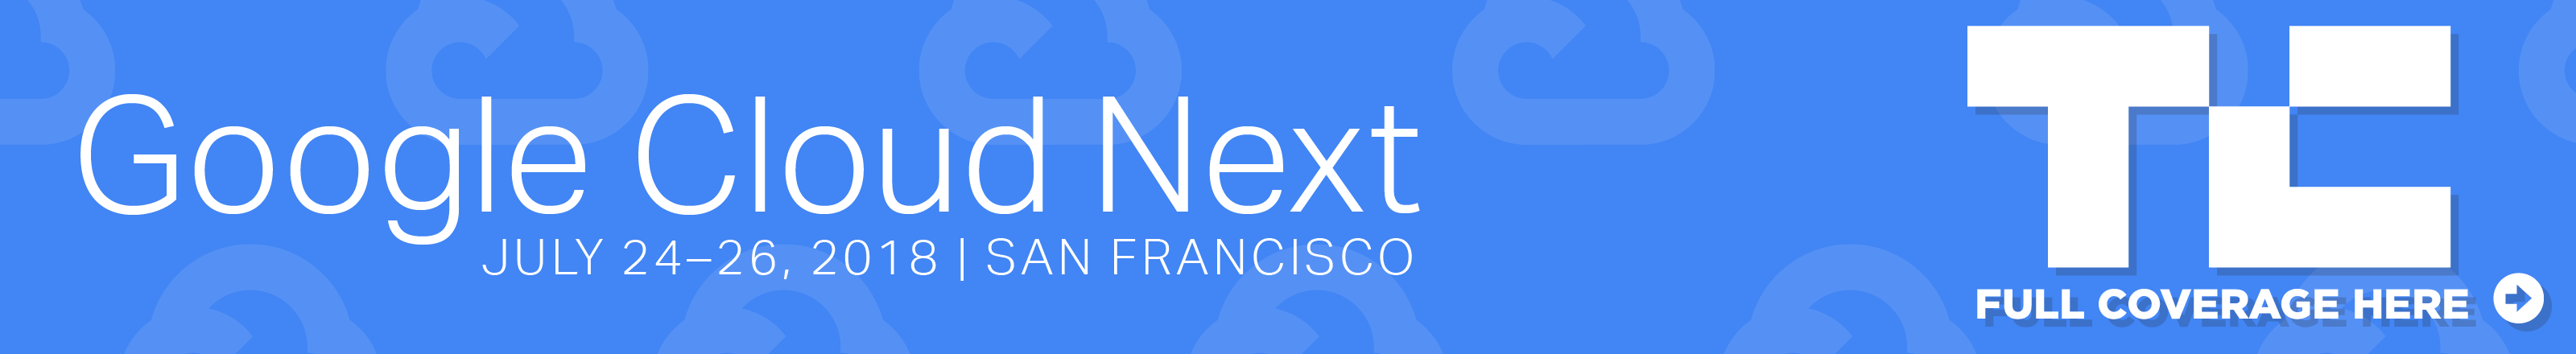 google cloud next 2018 banner 3